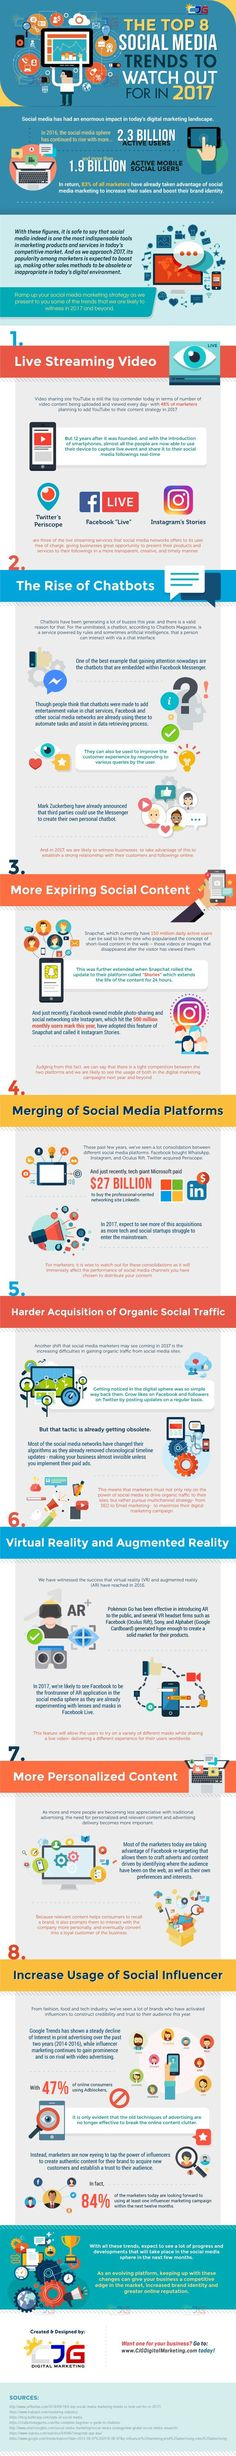 How to Build a Better Social Marketing Strategy Infographic A - social media marketing plan